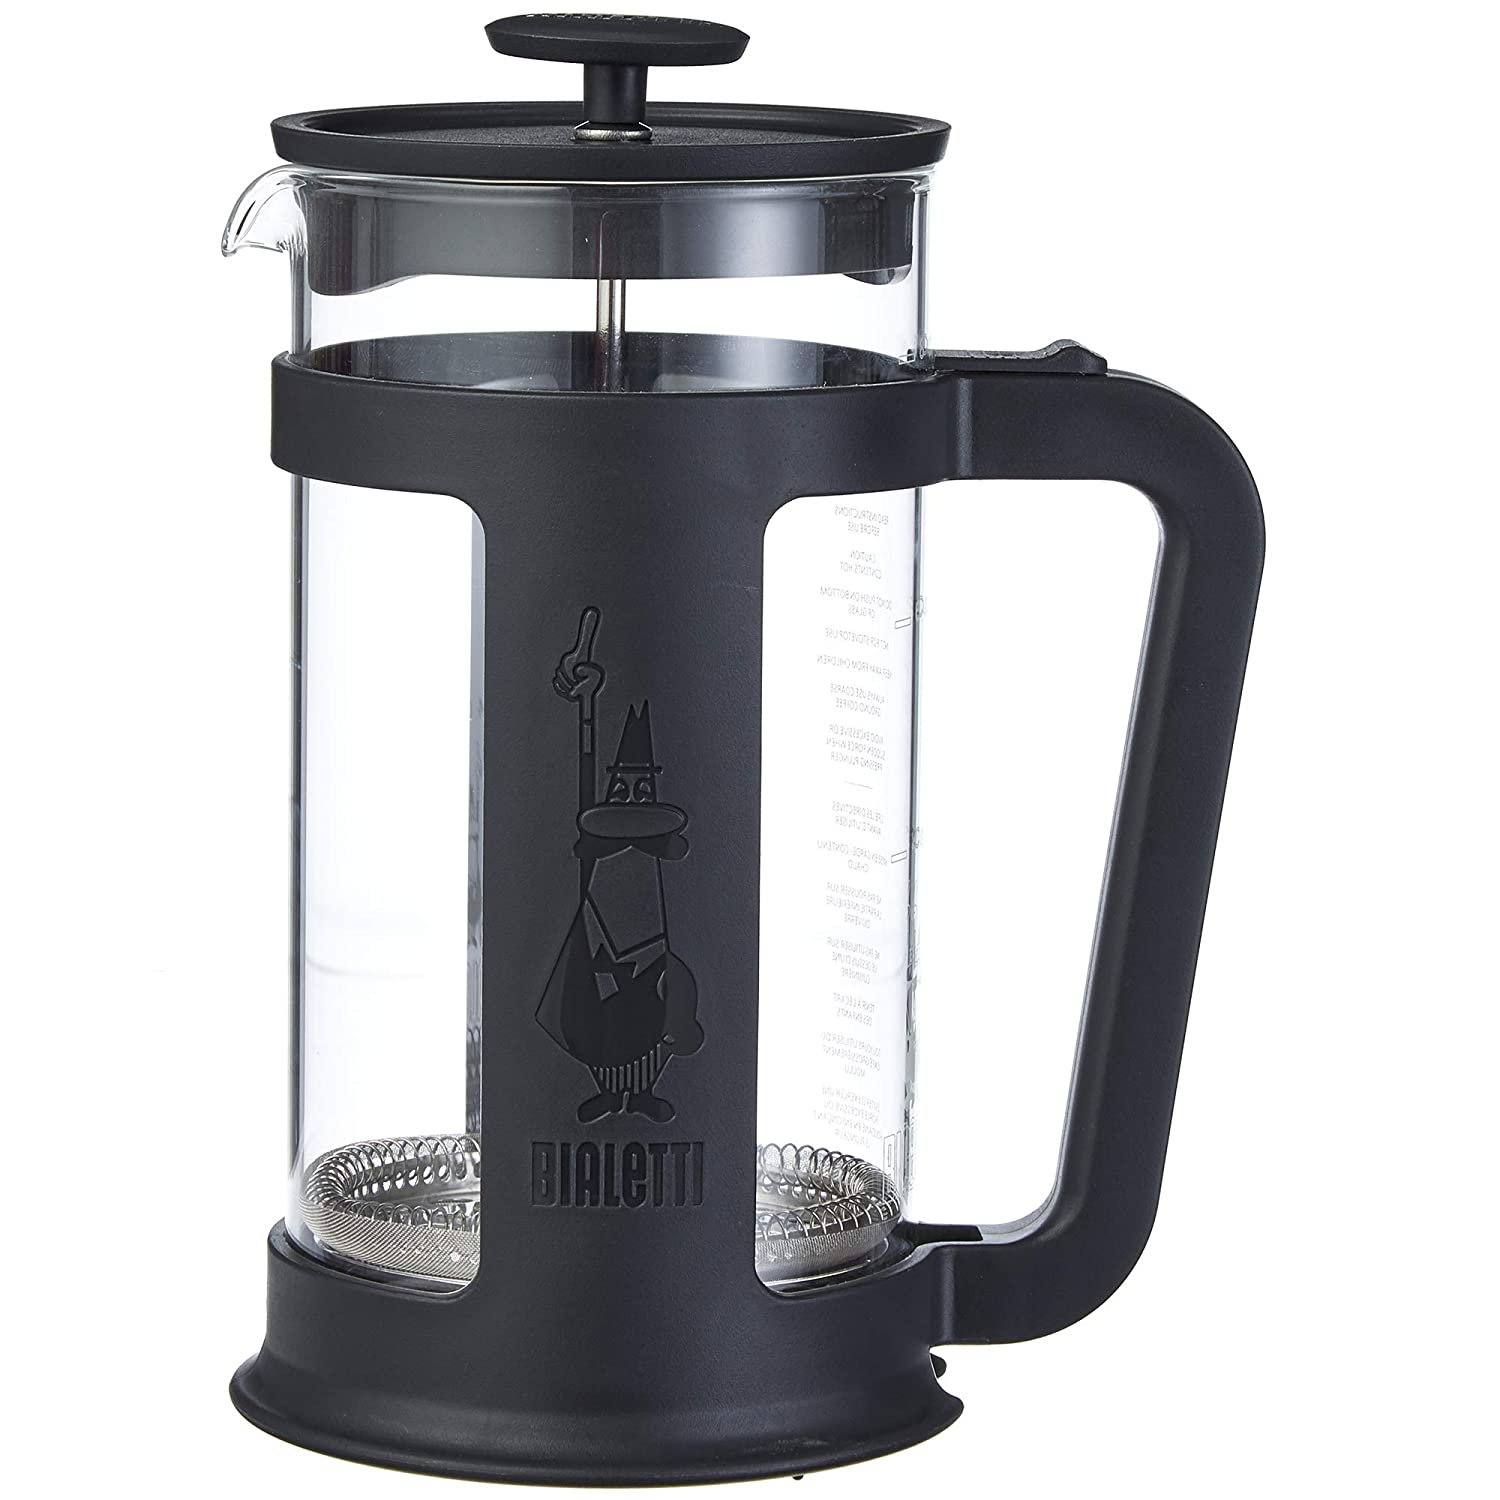 Bialetti 06641 Modern Coffee Press, Black